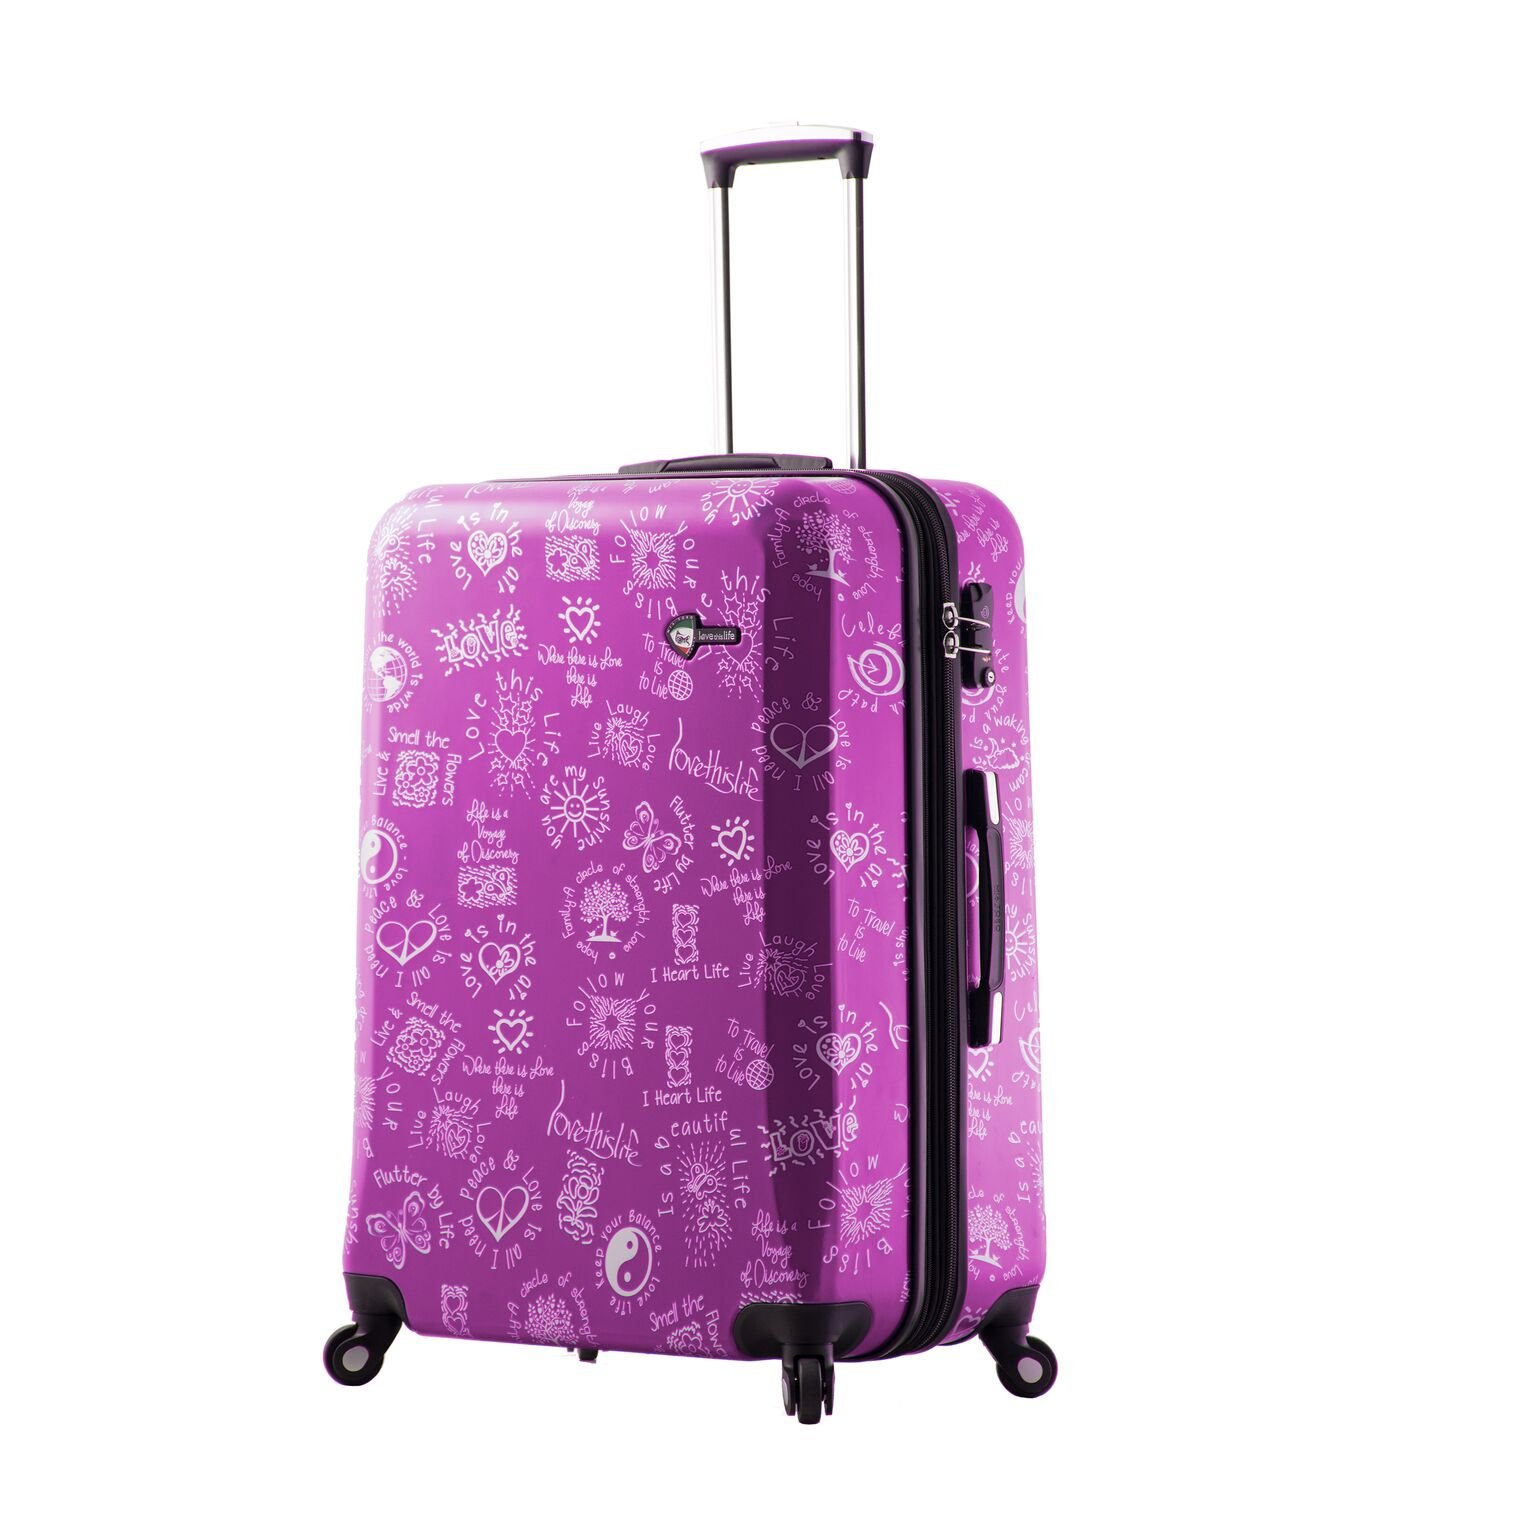 Mia Toro M1089-28in-Pur Love This Life-Medallions Hardside 28 Inch Spinner, Purple